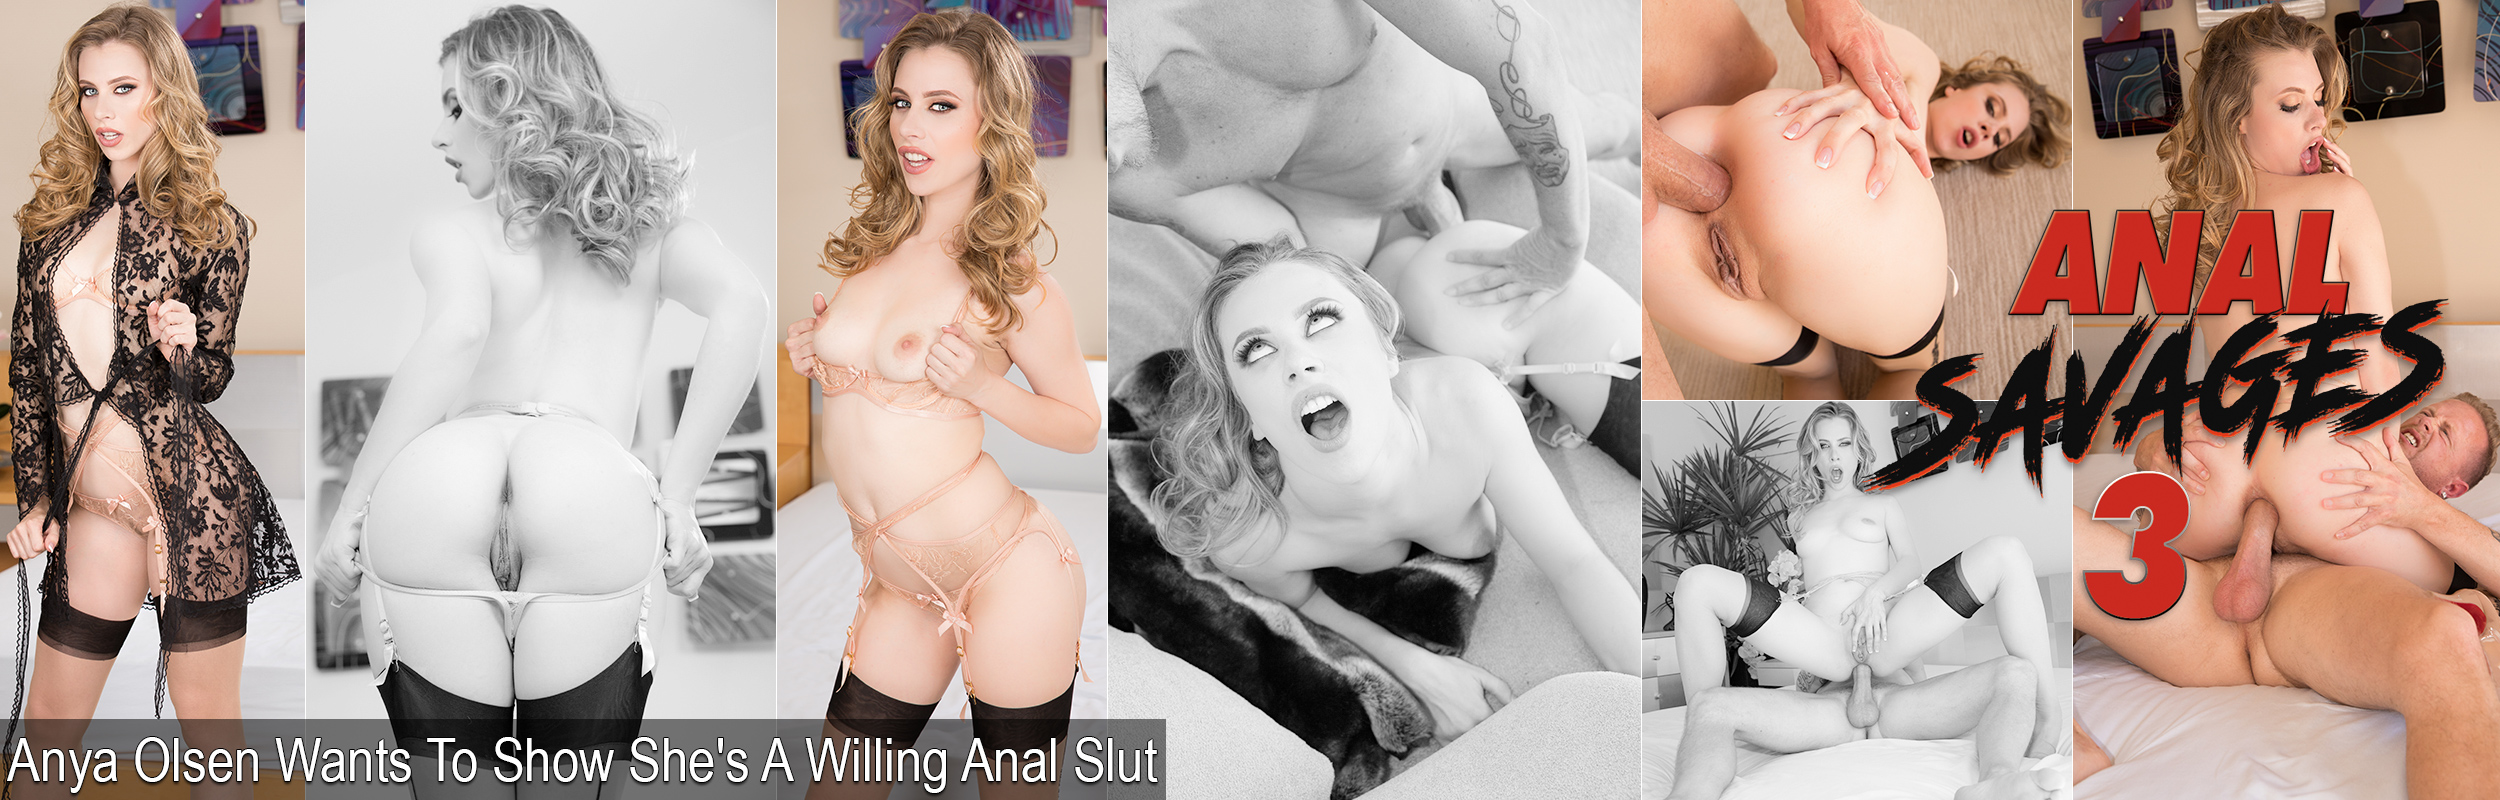 Anya Olsen Wants To Show She's A Willing Anal Slut